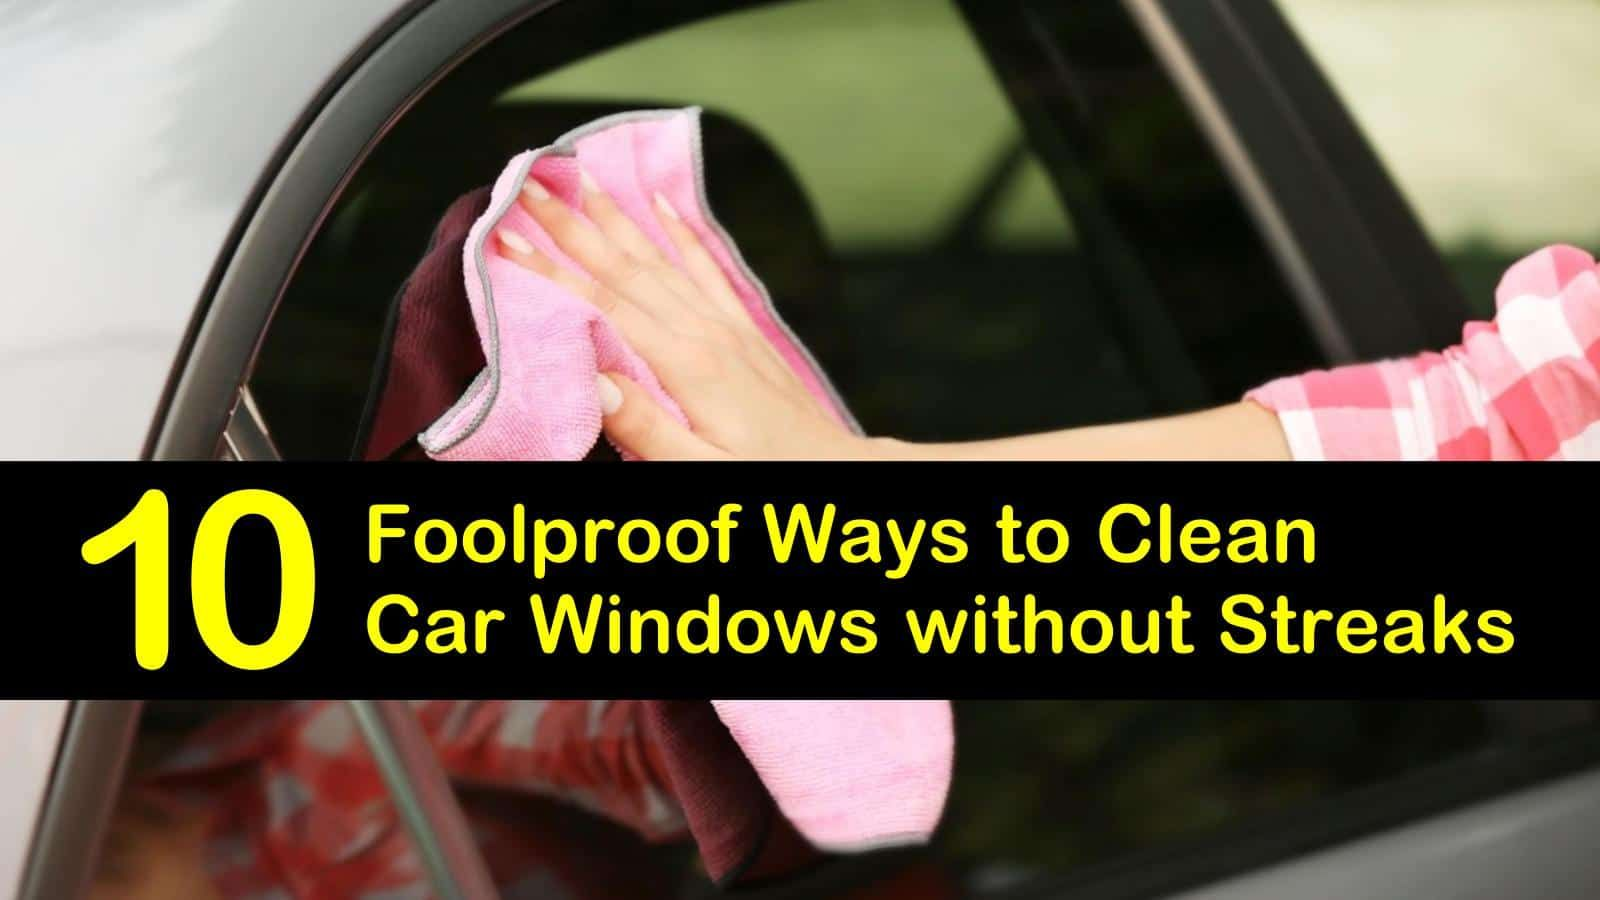 10 foolproof ways to clean car windows without streaks